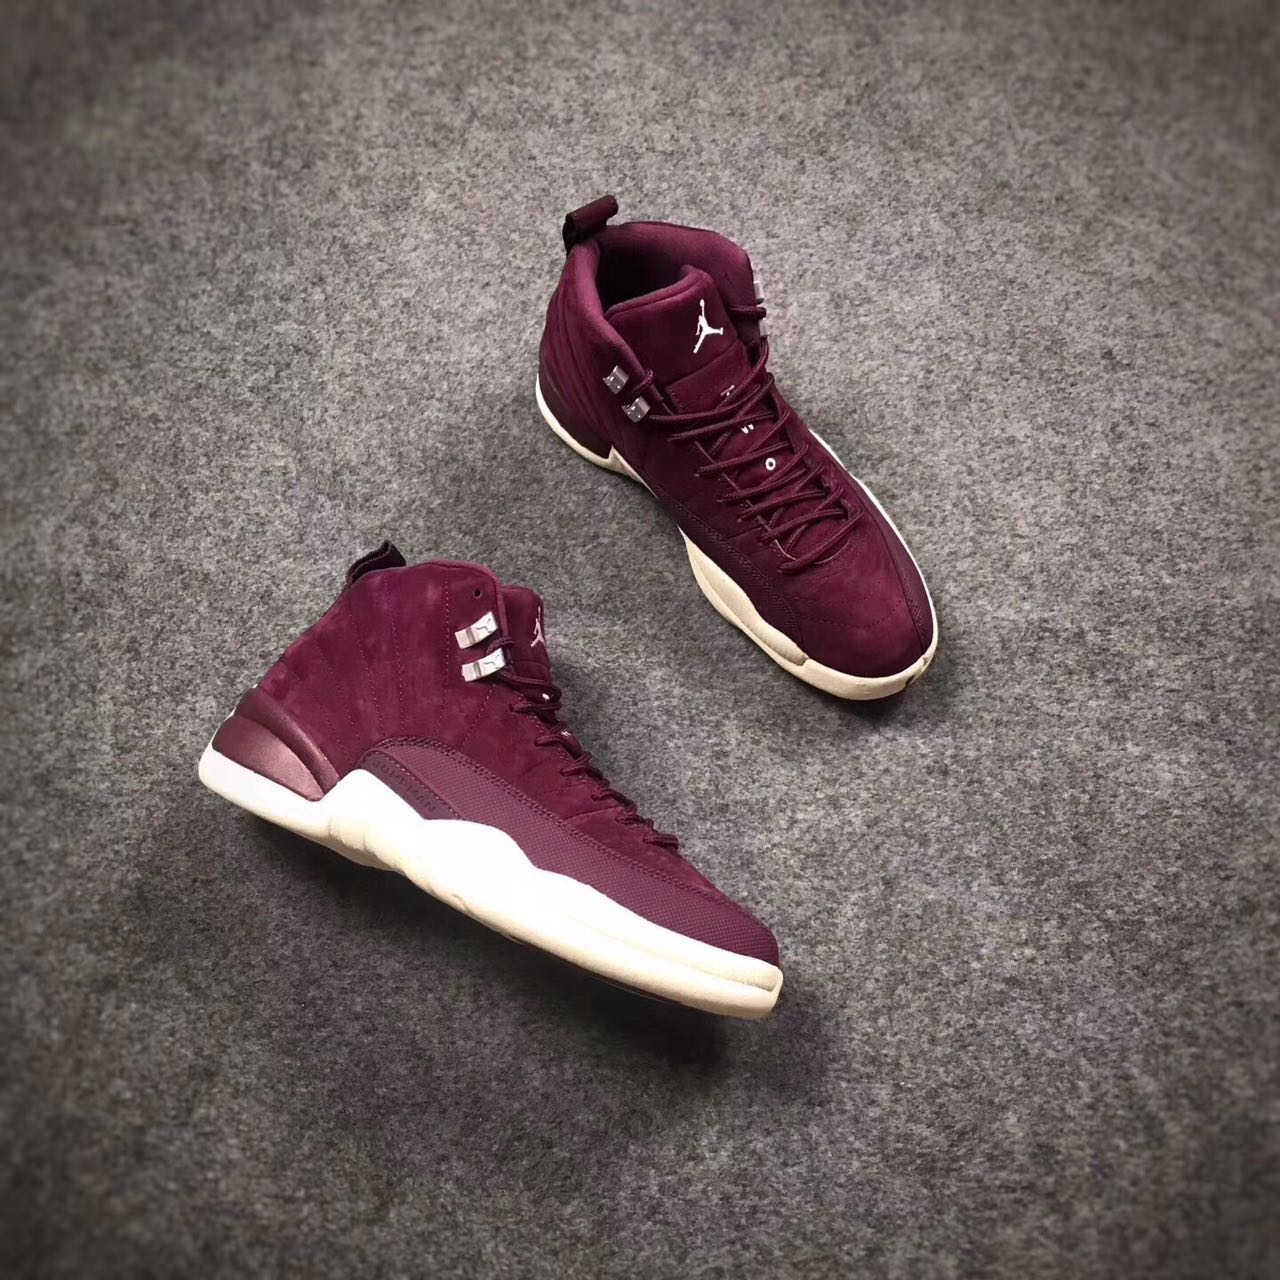 Air Jordan 12 Bordeaux Wine Red Shoes